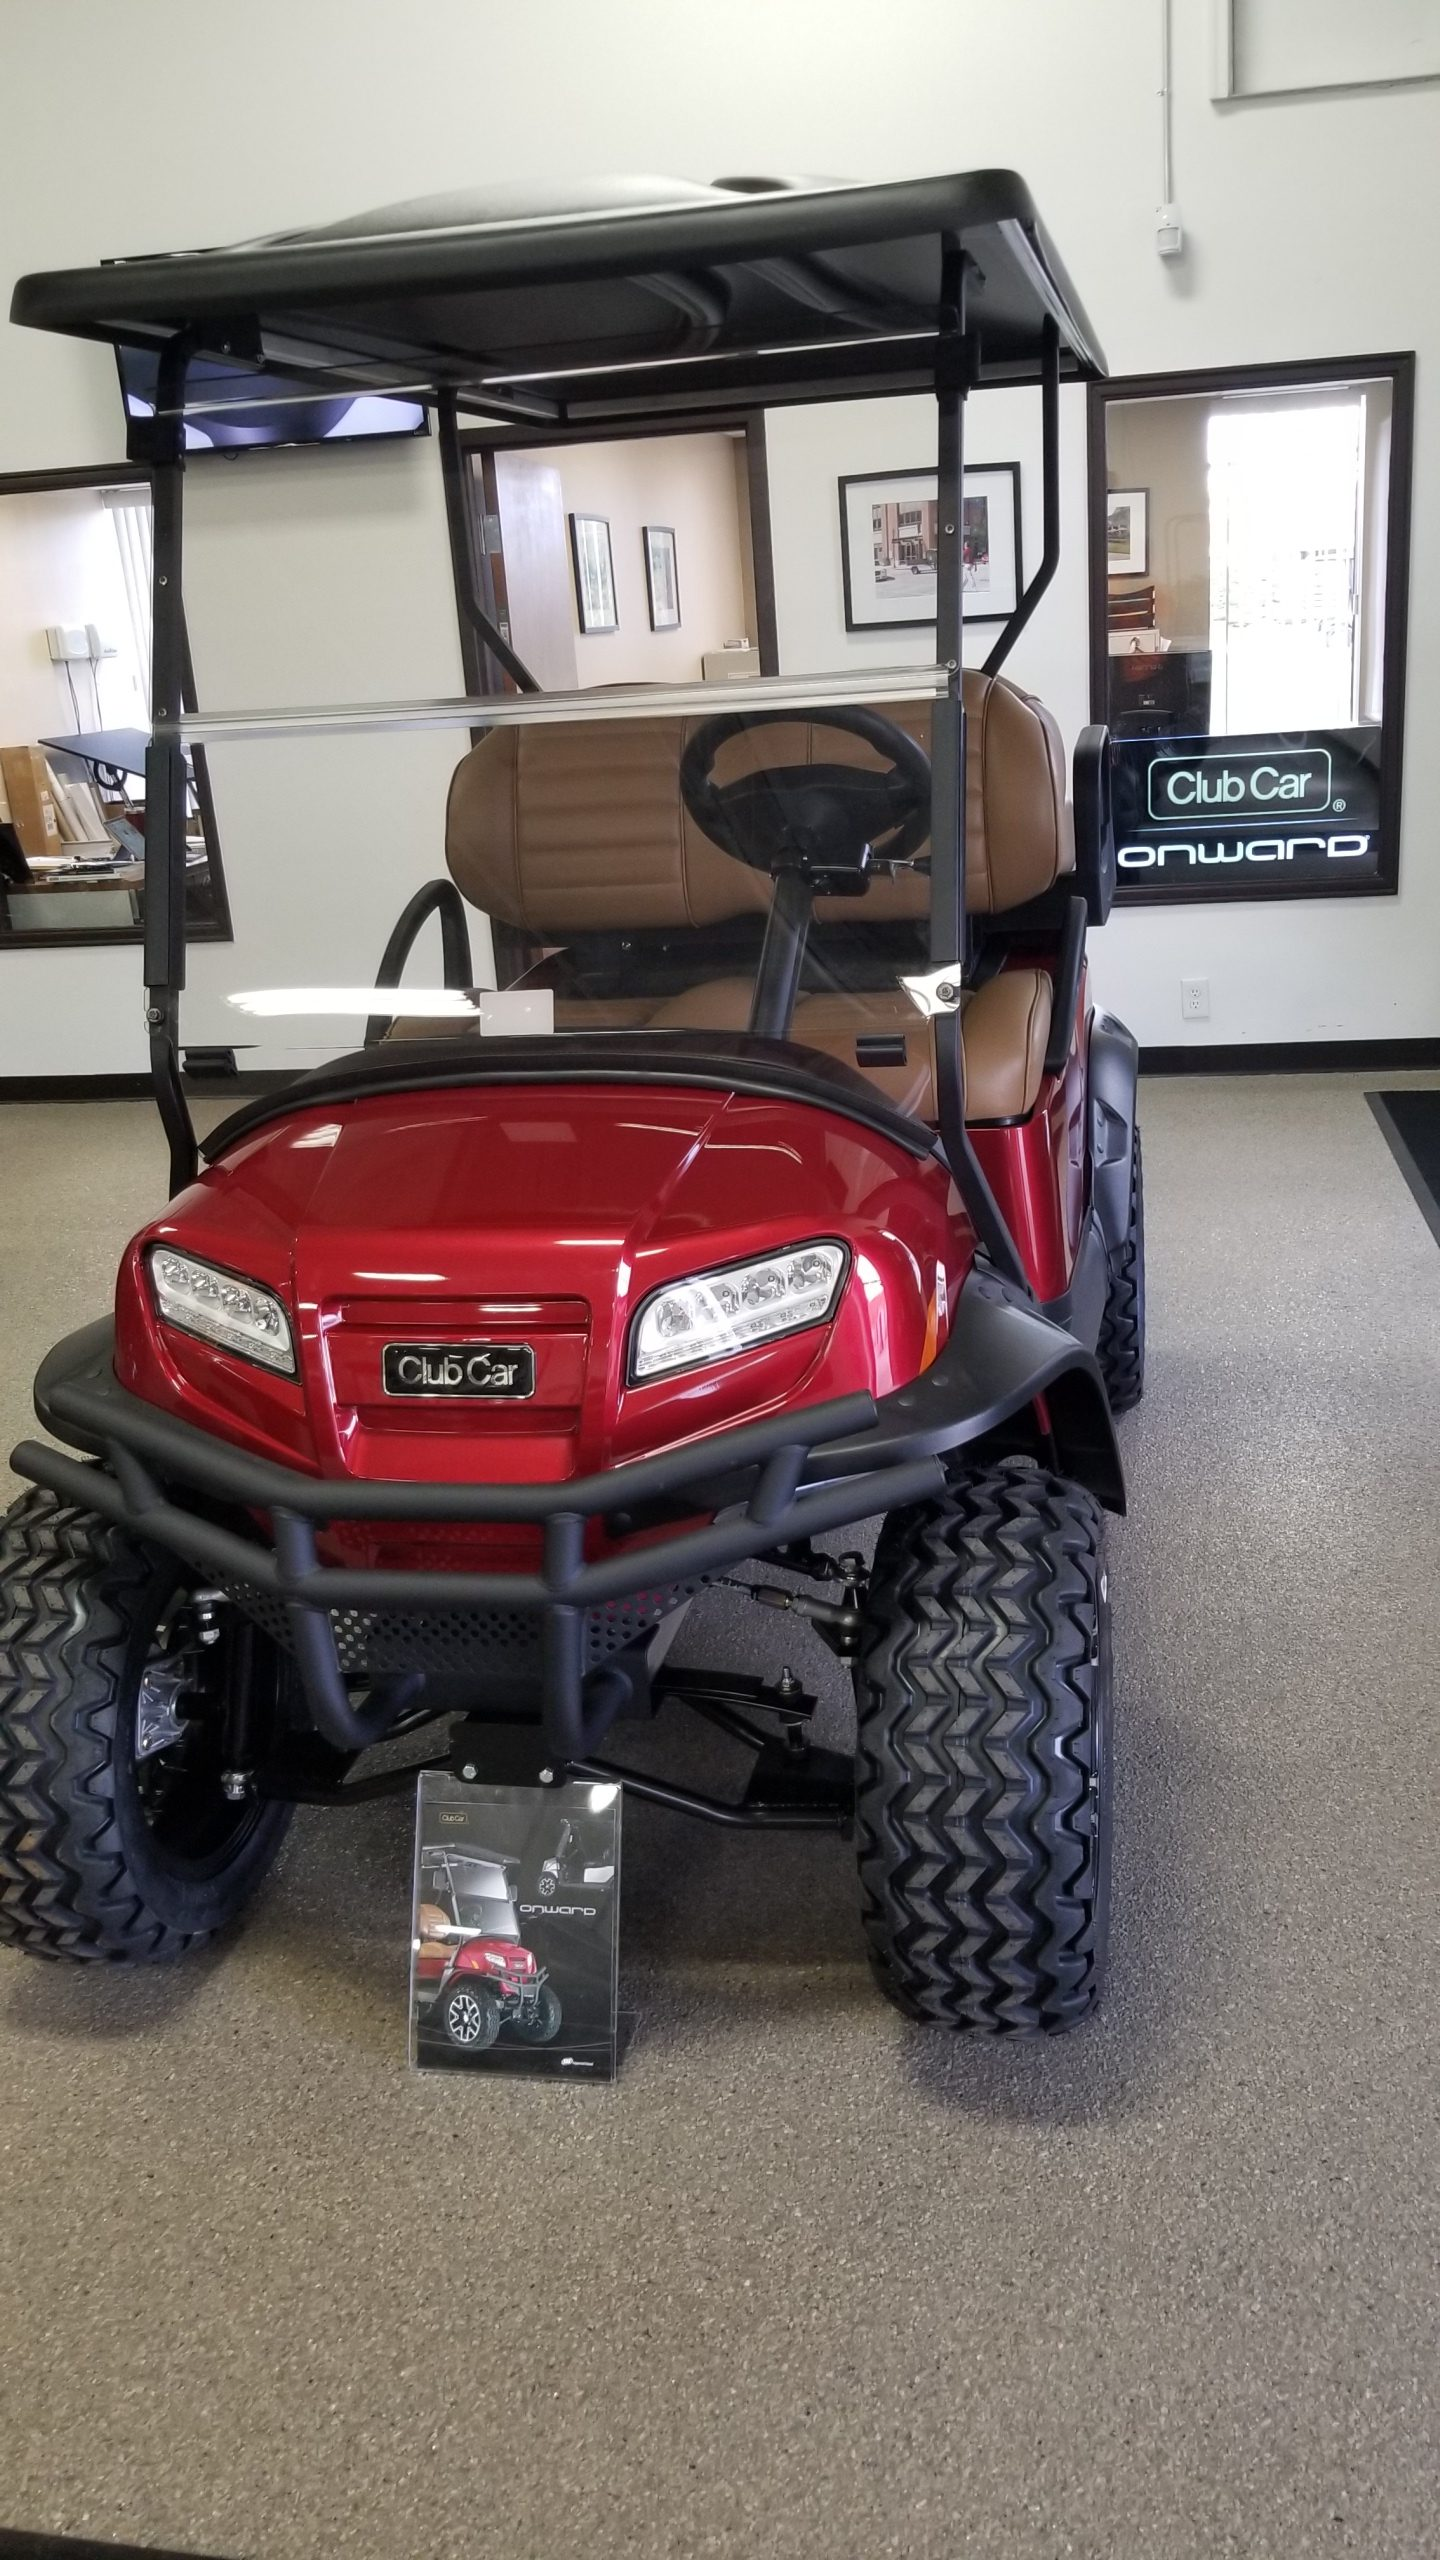 2019 Club Car Onward Lifted 4 Passenger Gas Post Thumbnail